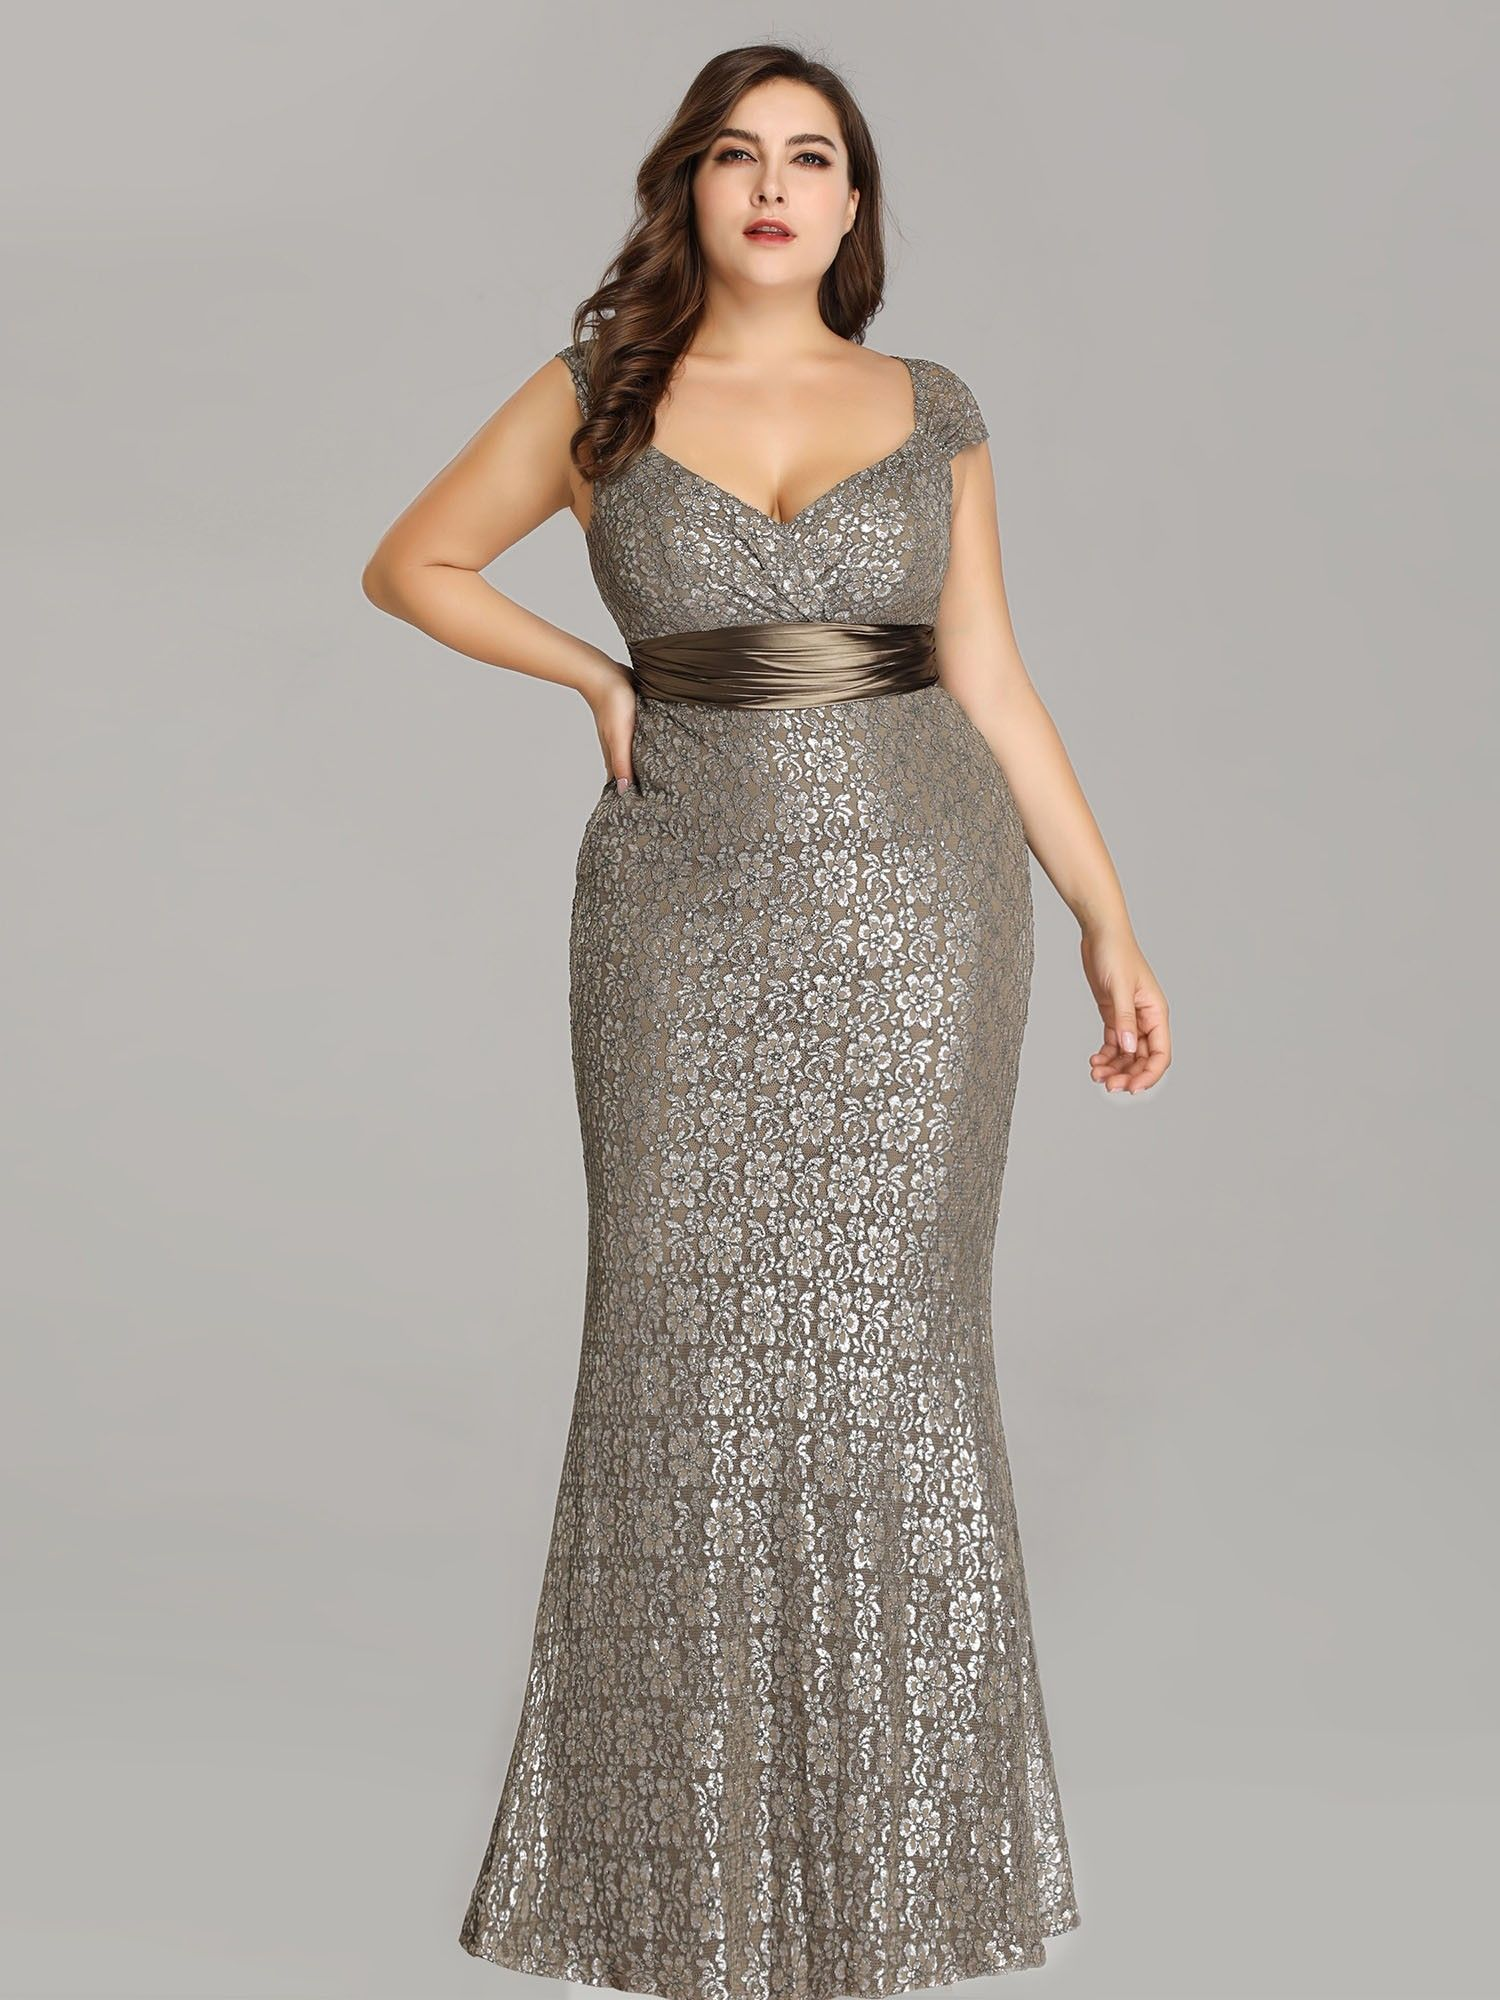 9cebdc8632 Plus Size Floor Length Lace Evening Party Dress | Ever-Pretty #lacedress  #plussizedress #plsusizeeveningdress #eveningdress #EverPretty #longdress